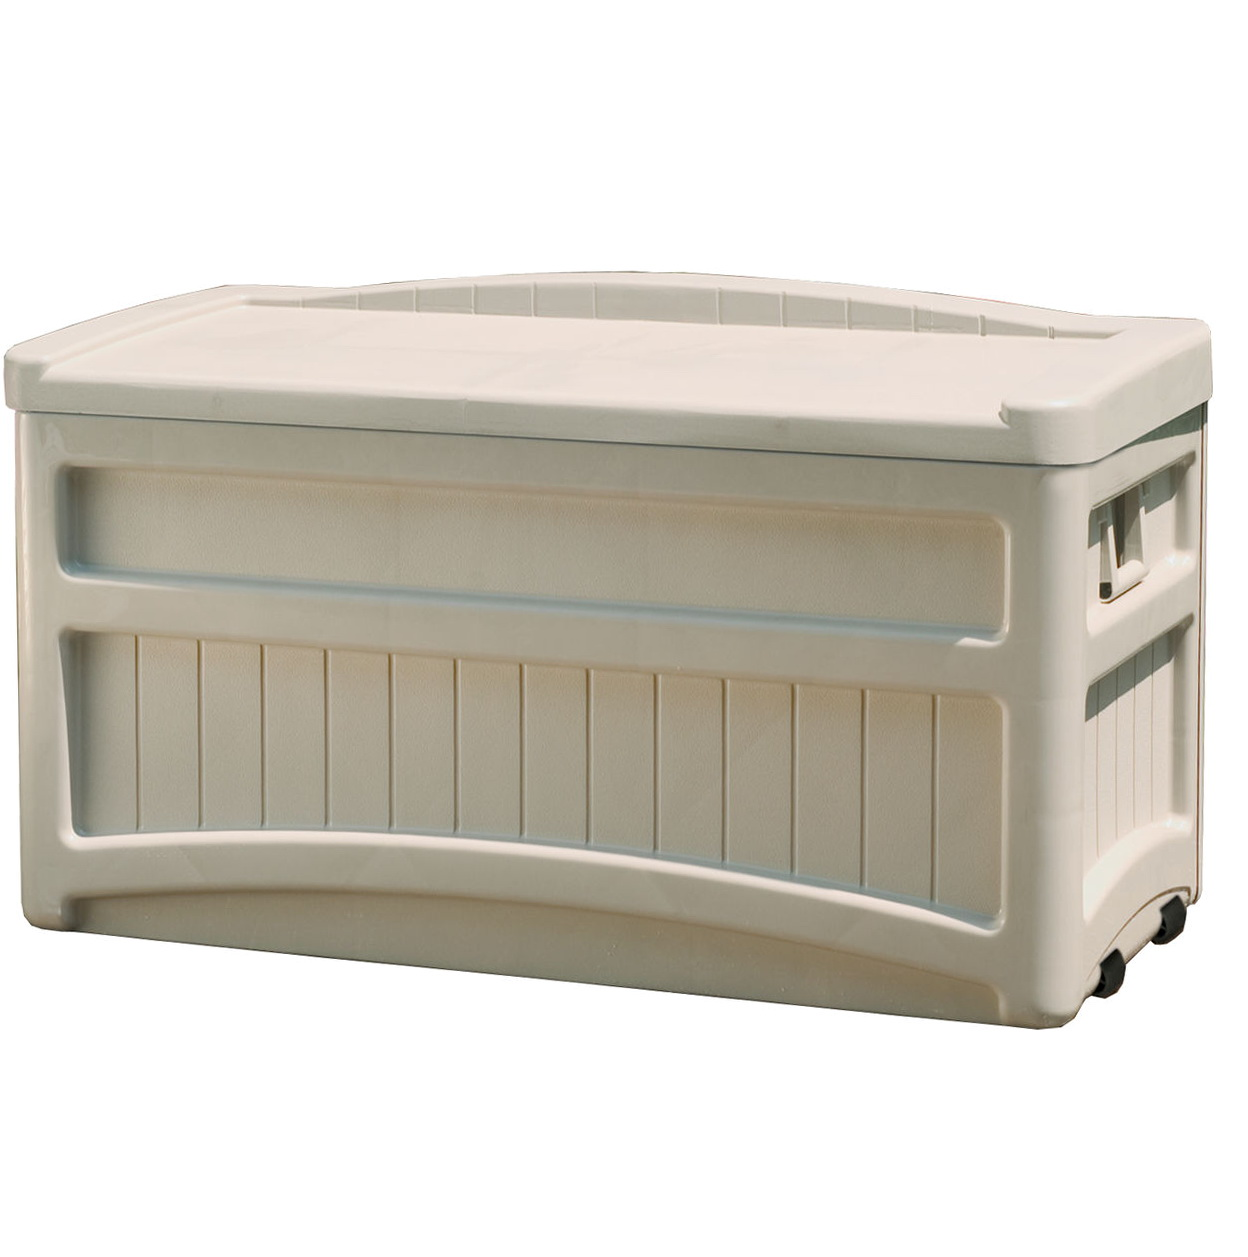 Suncast Deck Box With Seat And Wheels